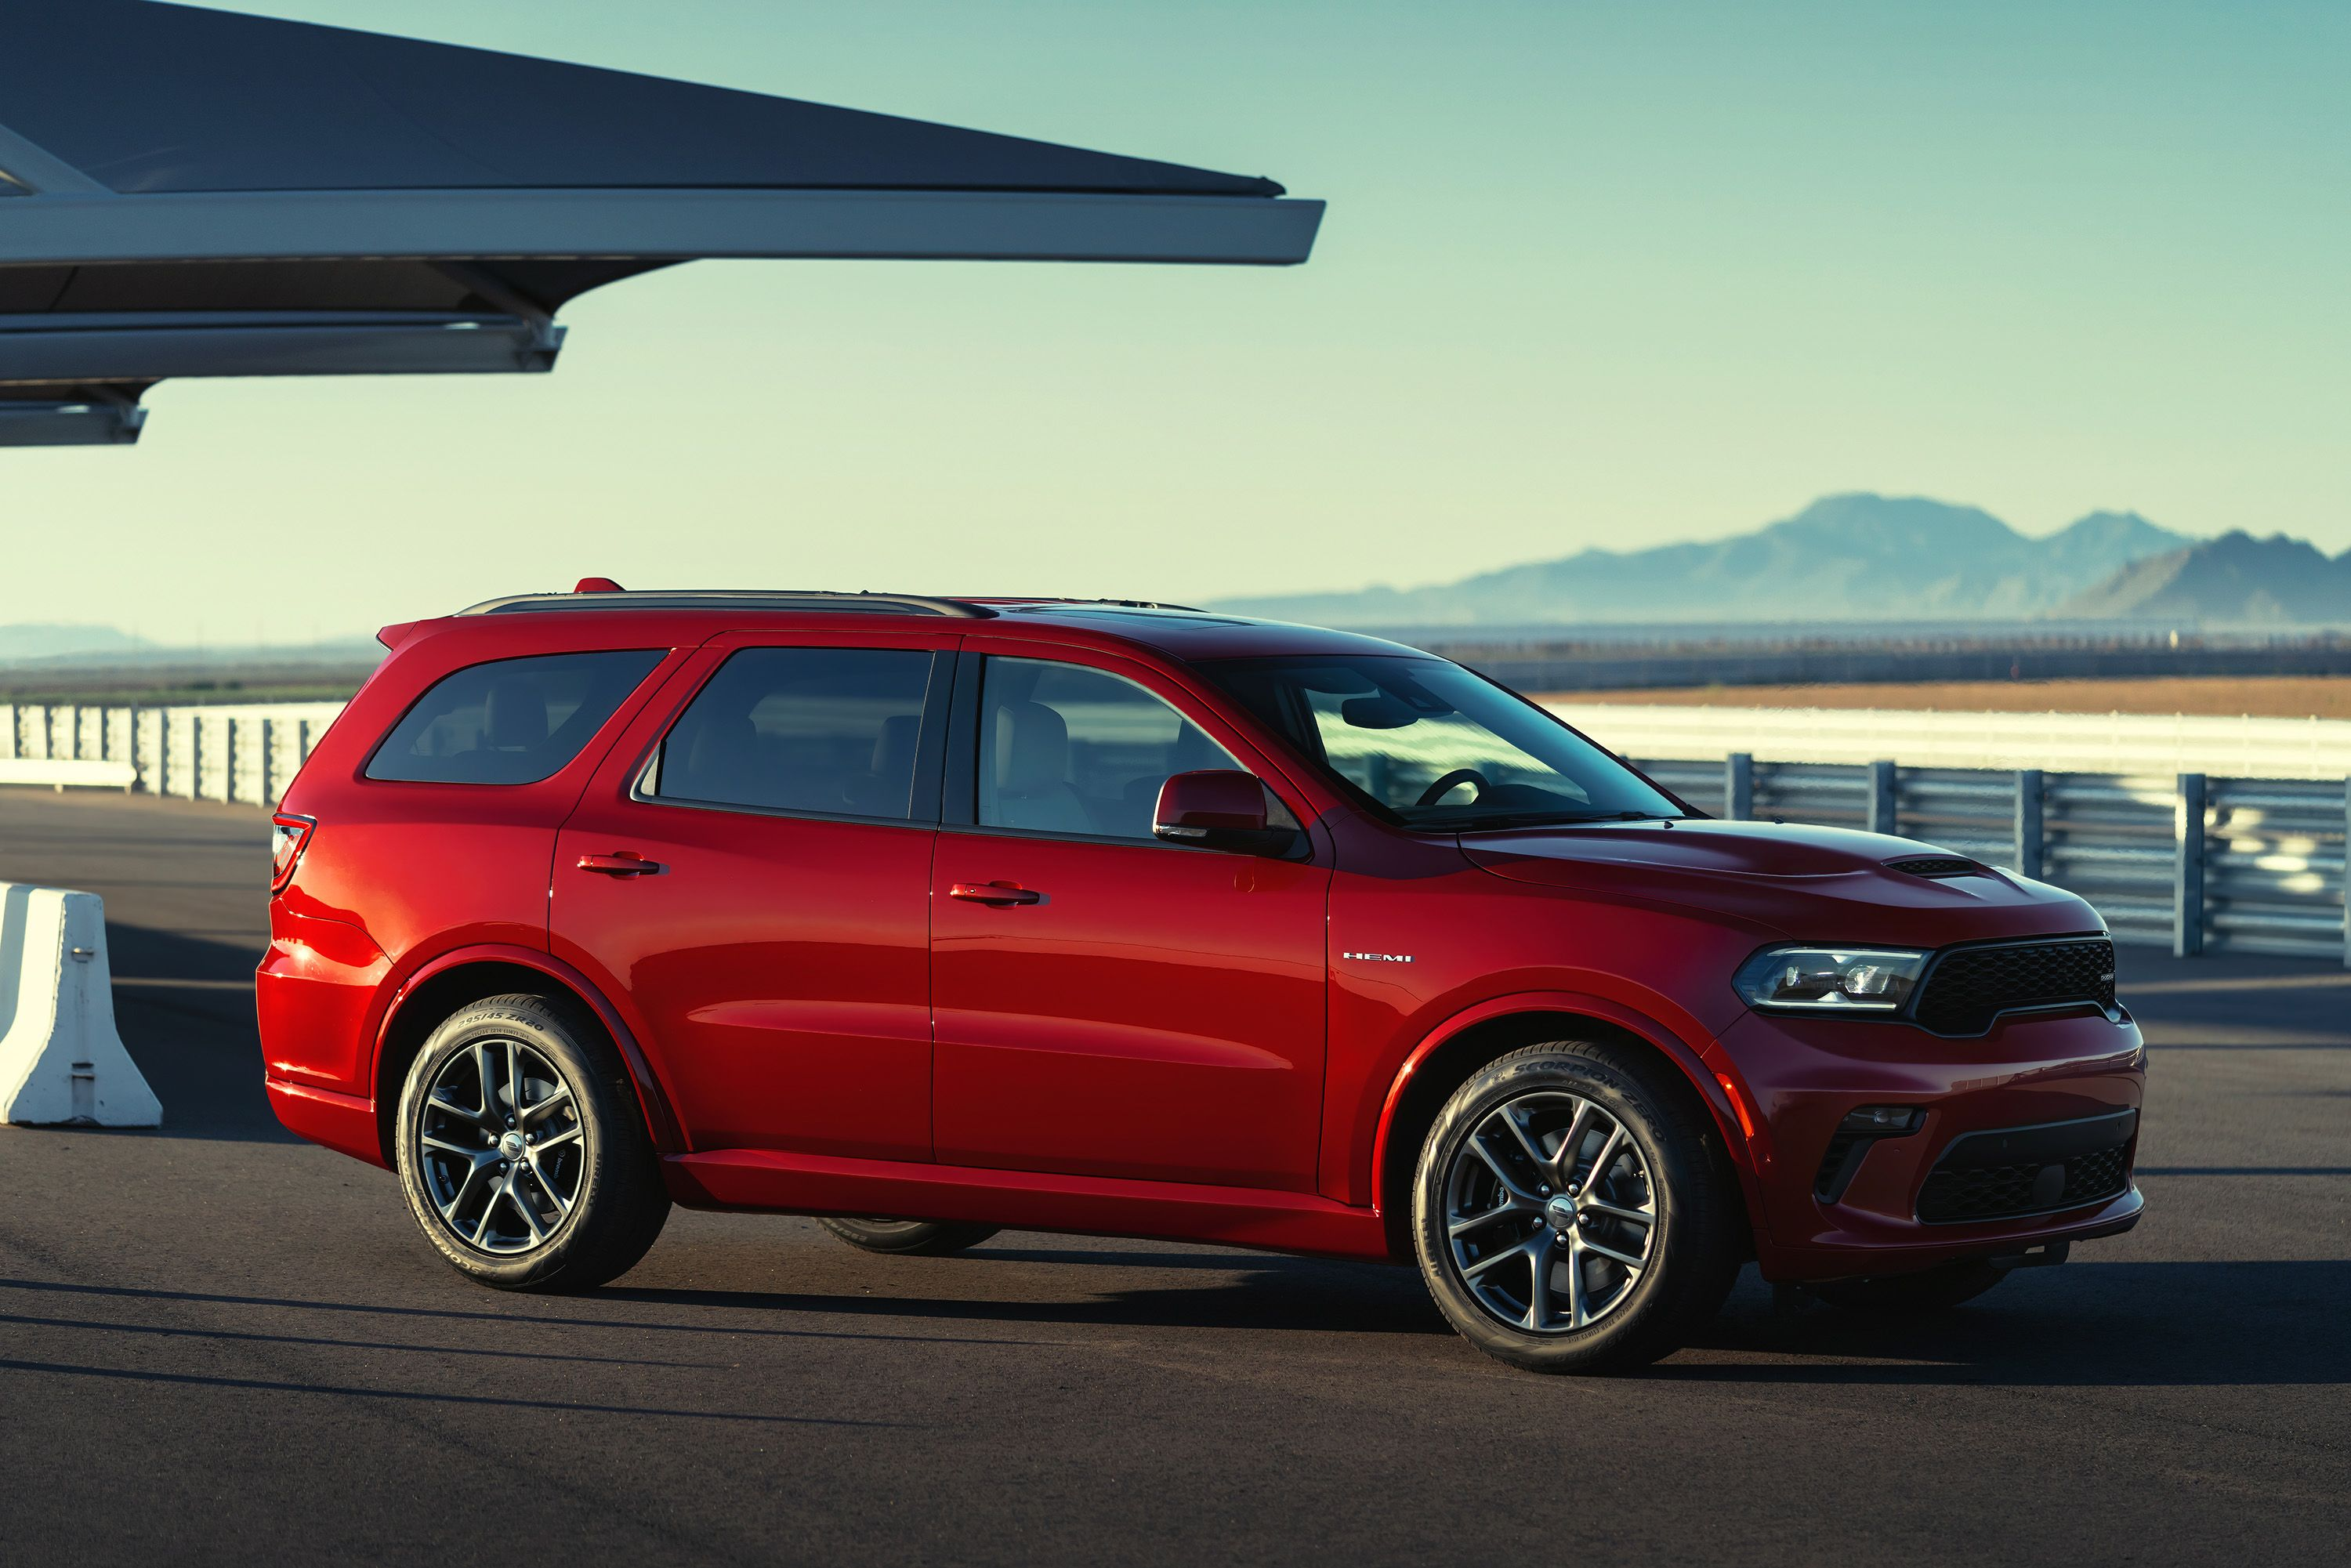 2021 Dodge Durango Review Pricing And Specs